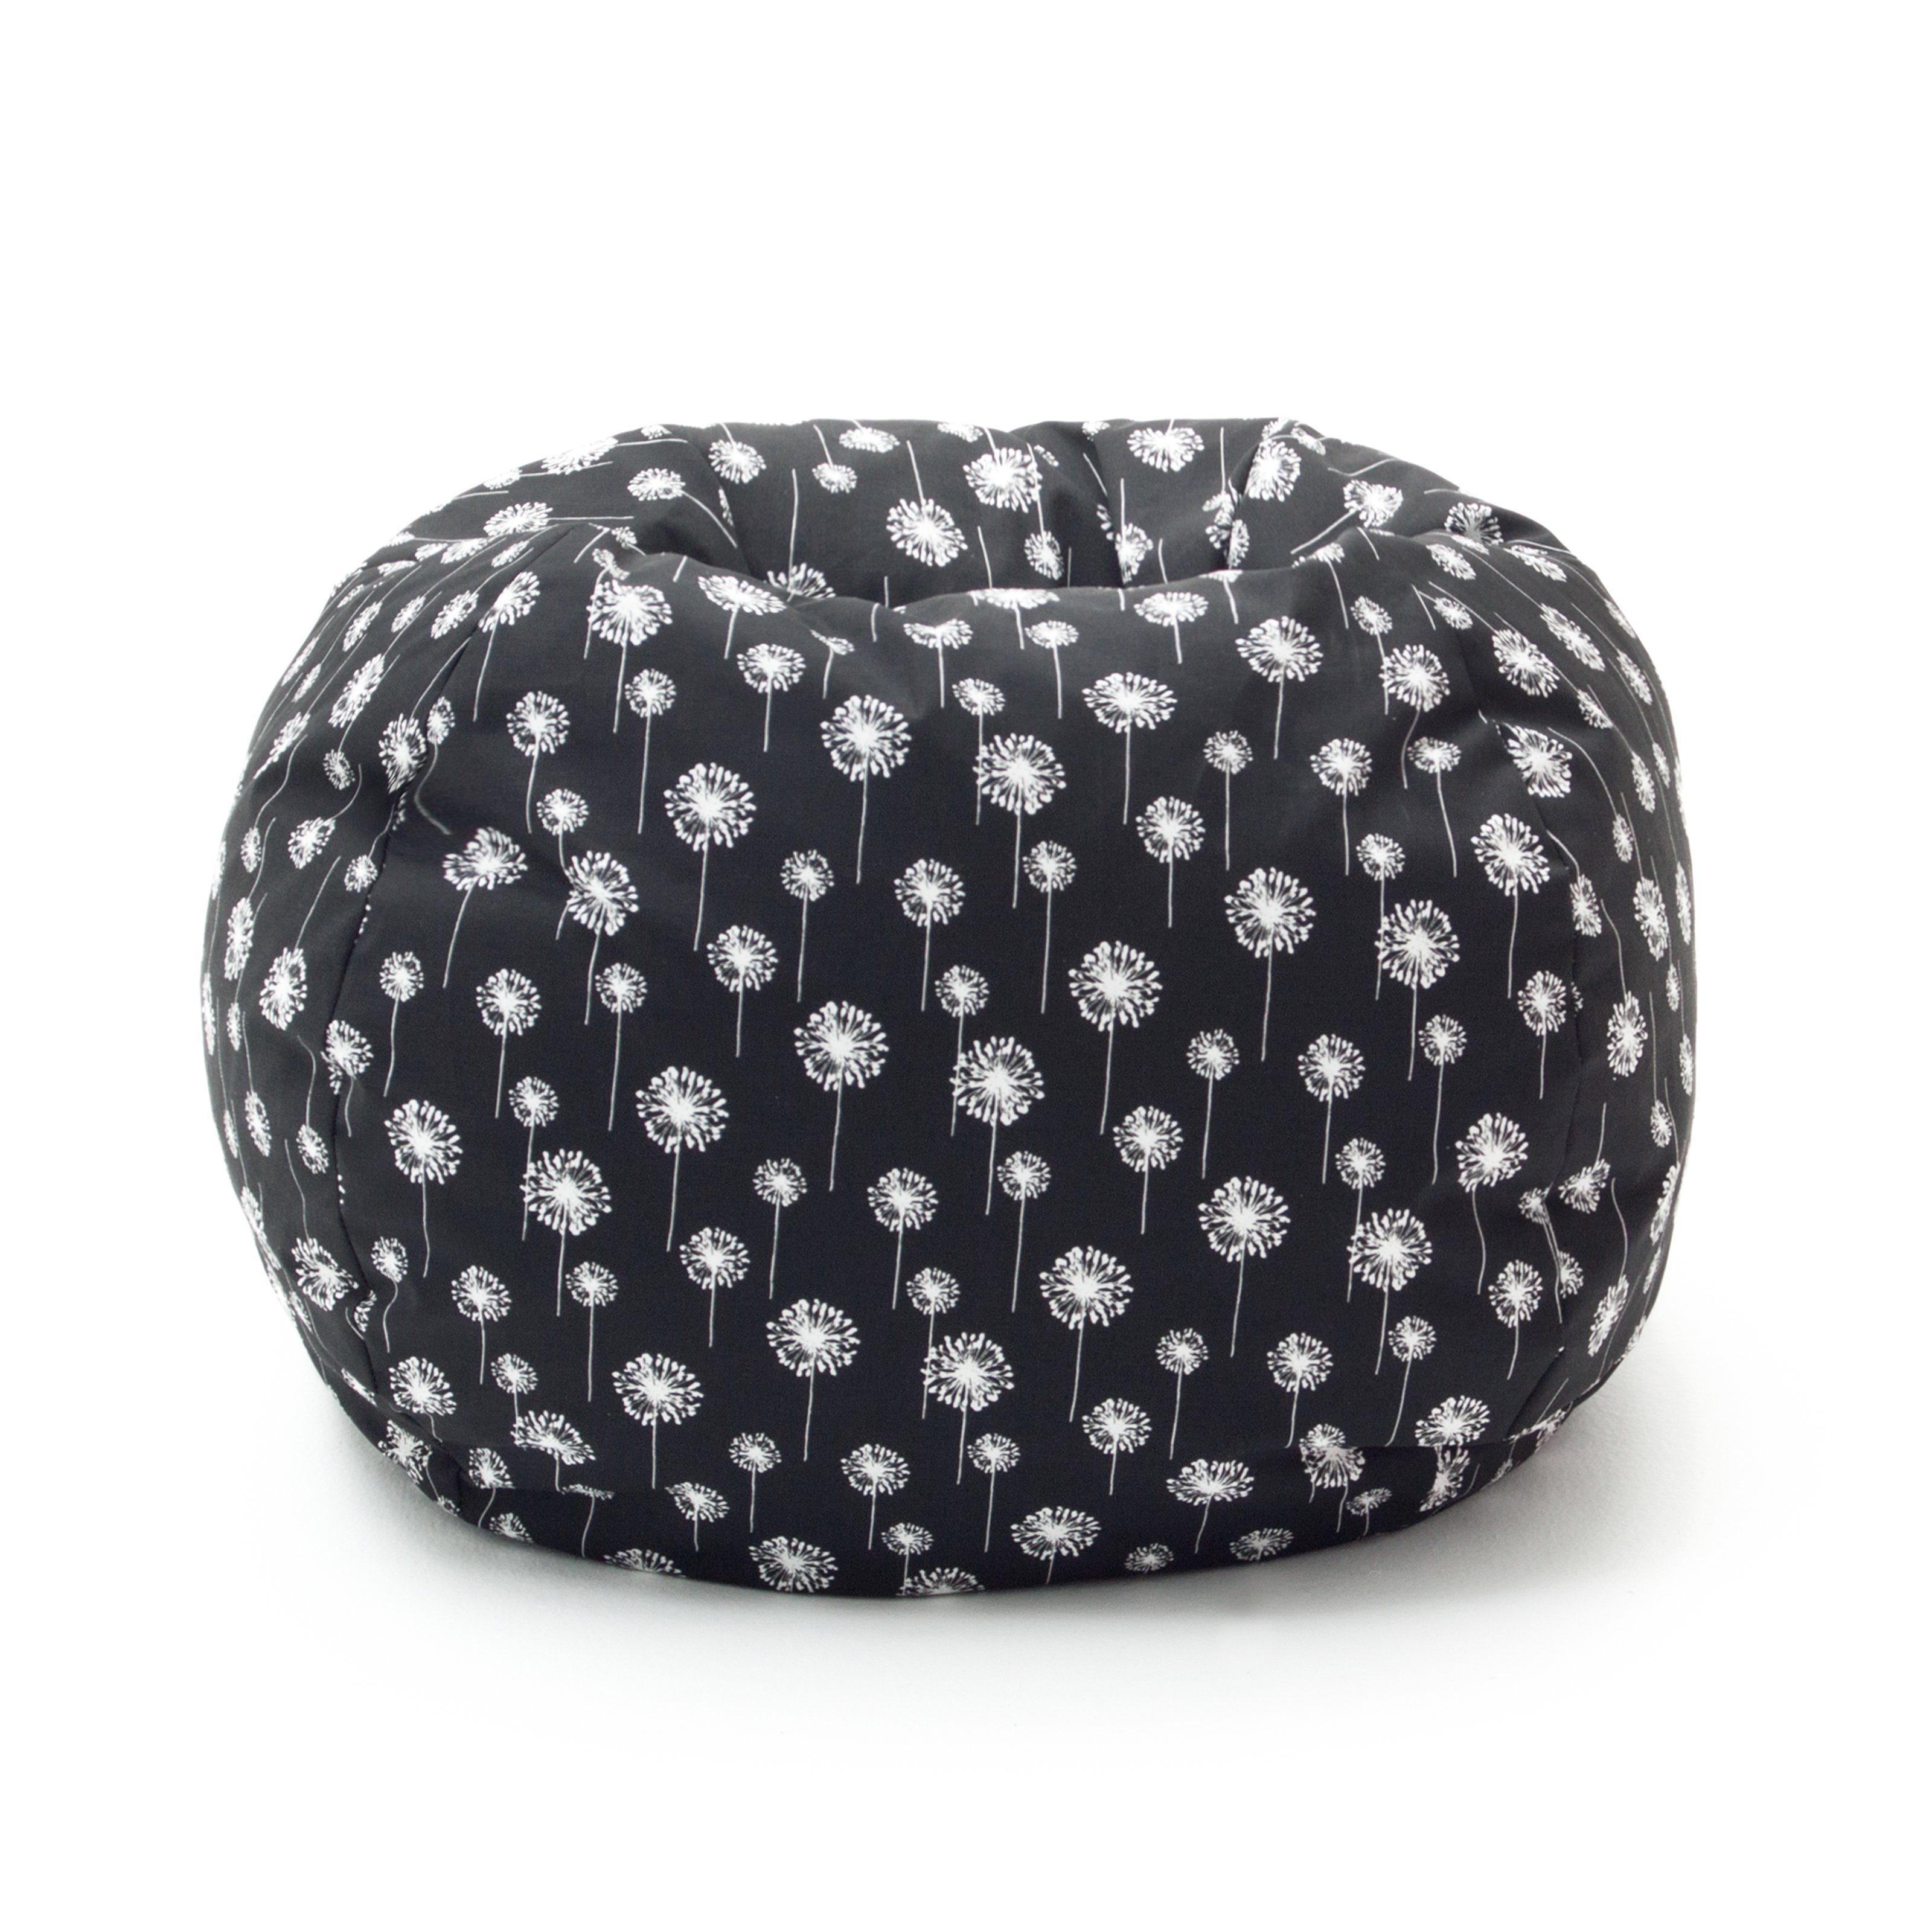 Comfort Research Medium Twill Bean Bag Chair - Black with Small White Dandelions